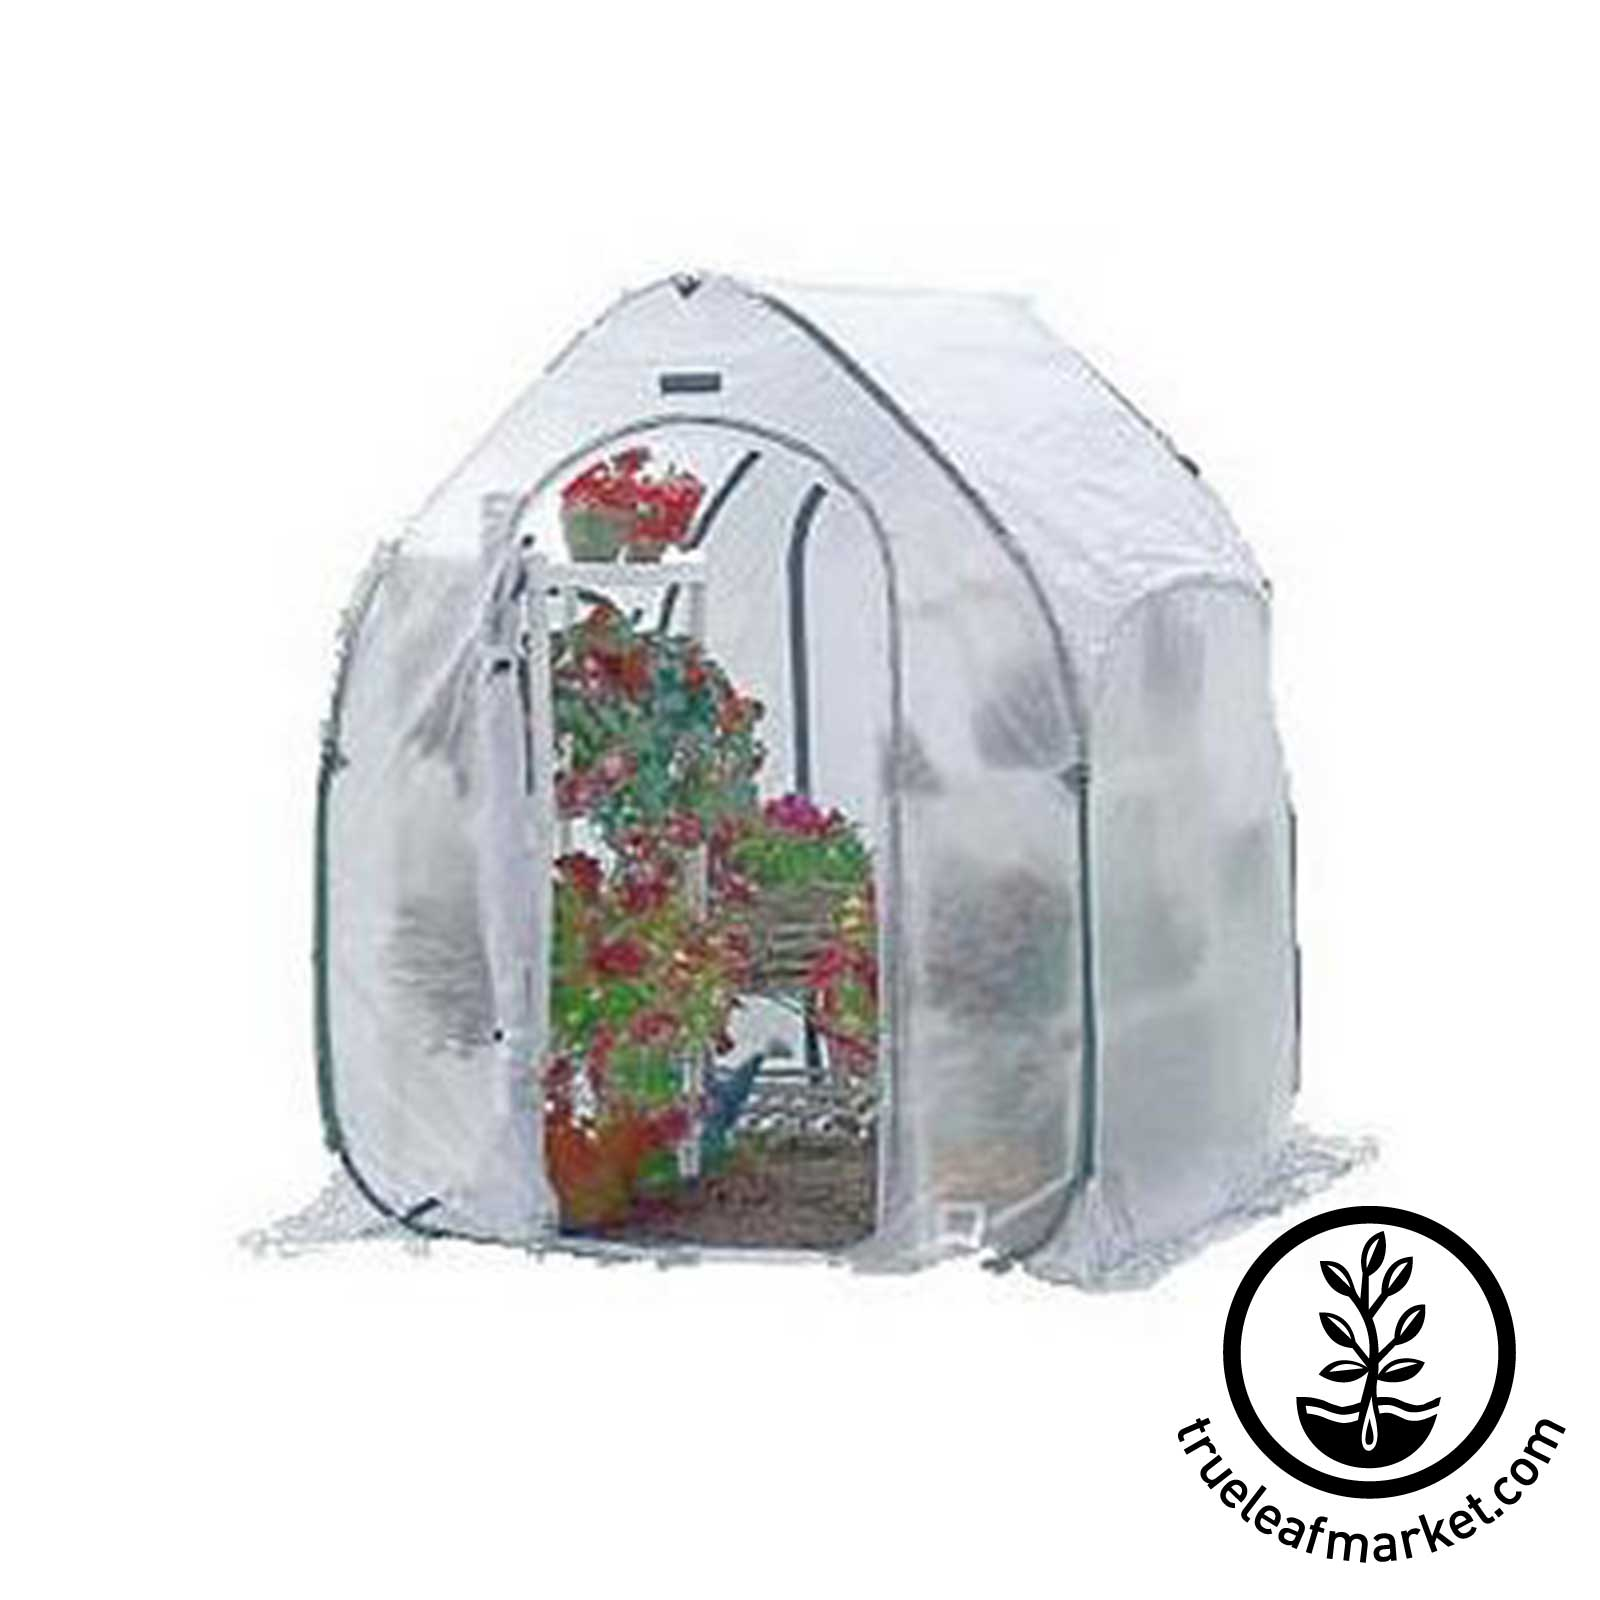 Mini-Greenhouse - Portable PlantHouse portable greenhouse, mini greenhouse